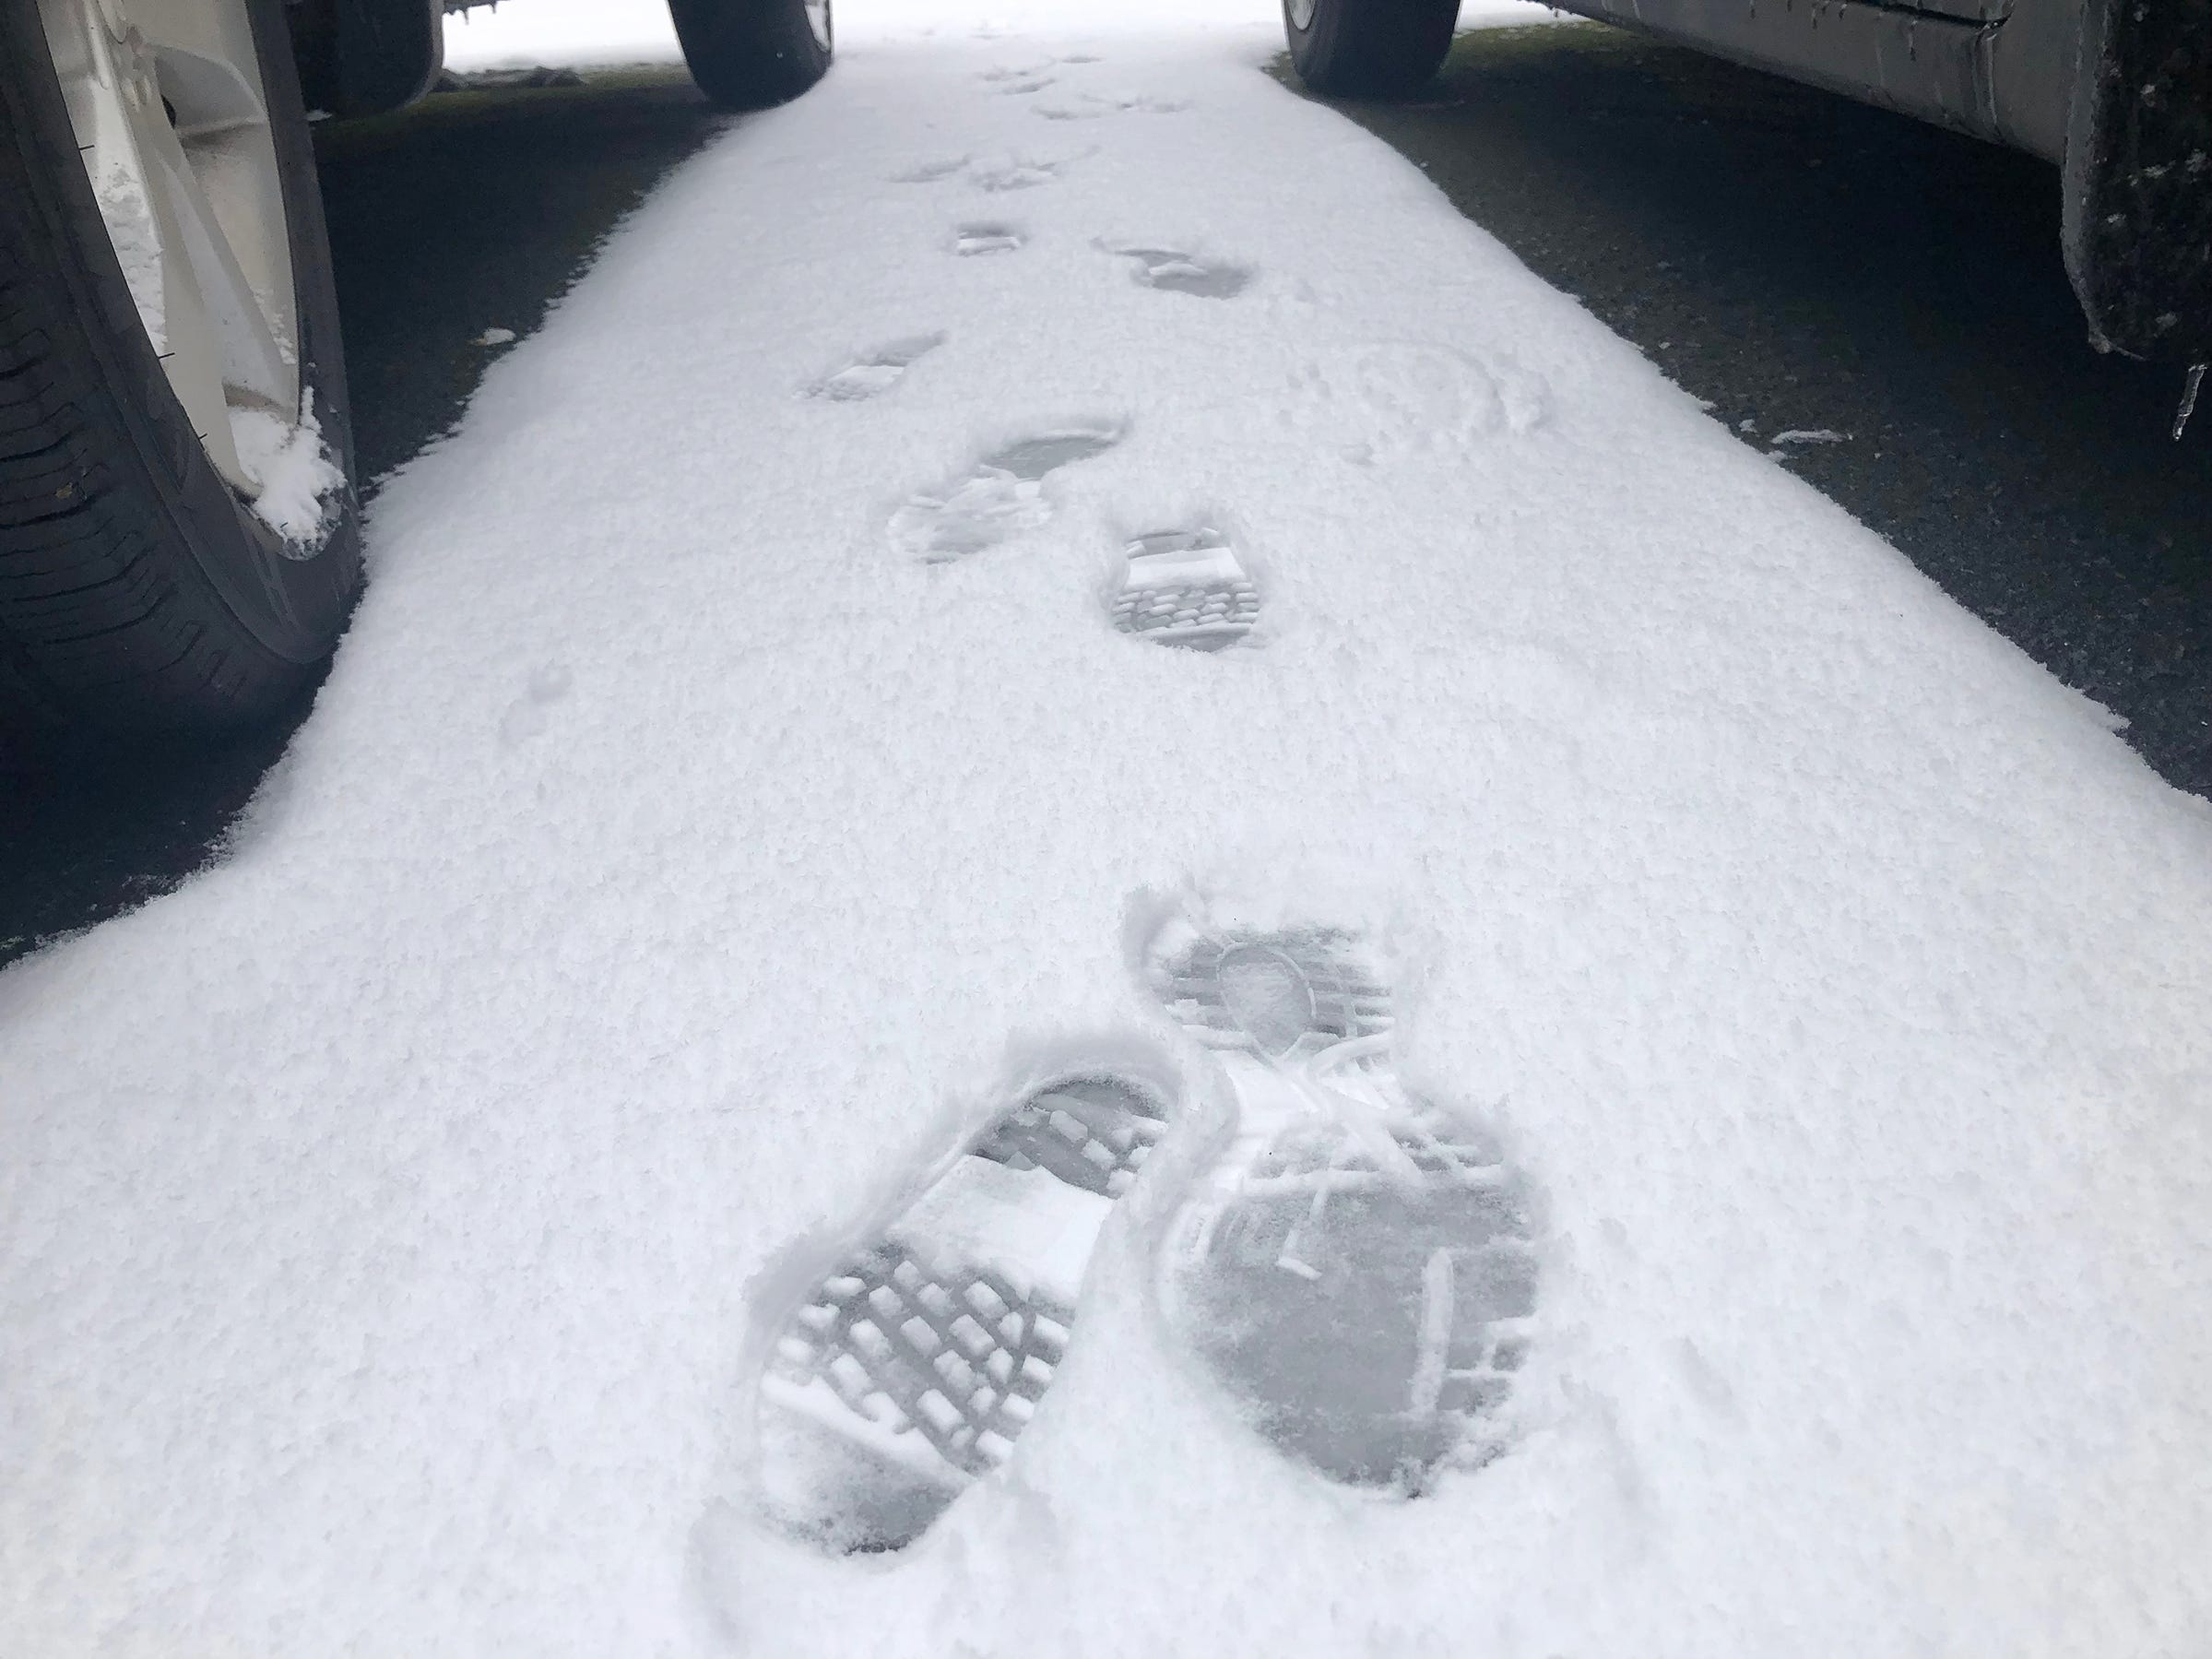 Footprints in the snow between cars in Salem Wednesday February 27, 2019. For a second day this week Salem residents woke up to a blanket of snow.